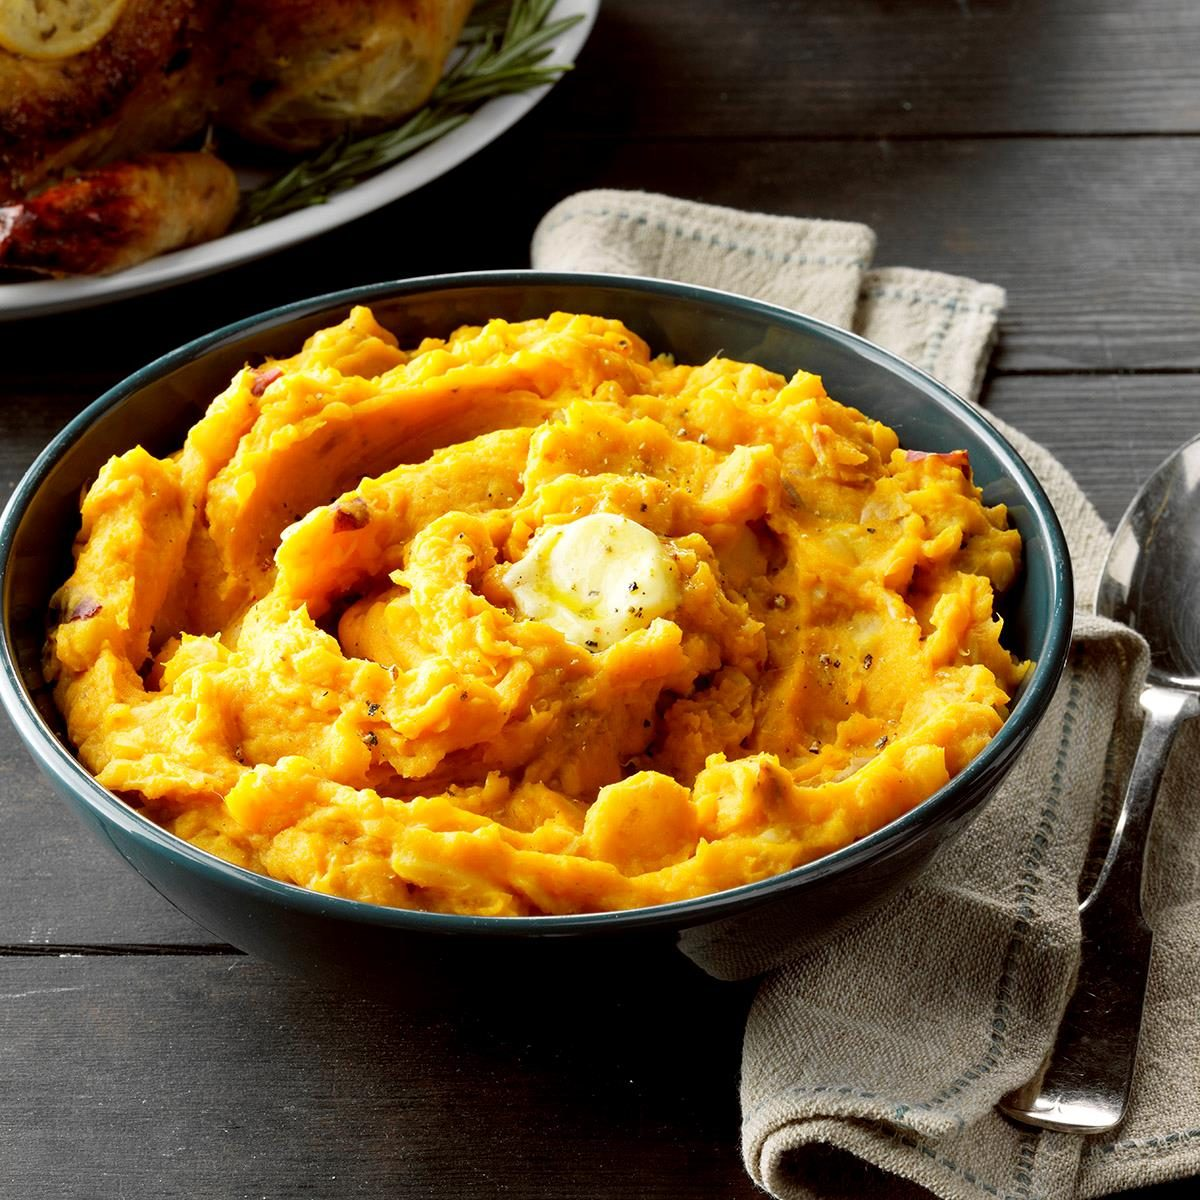 Tennessee: Autumn Harvest Mashed Potatoes